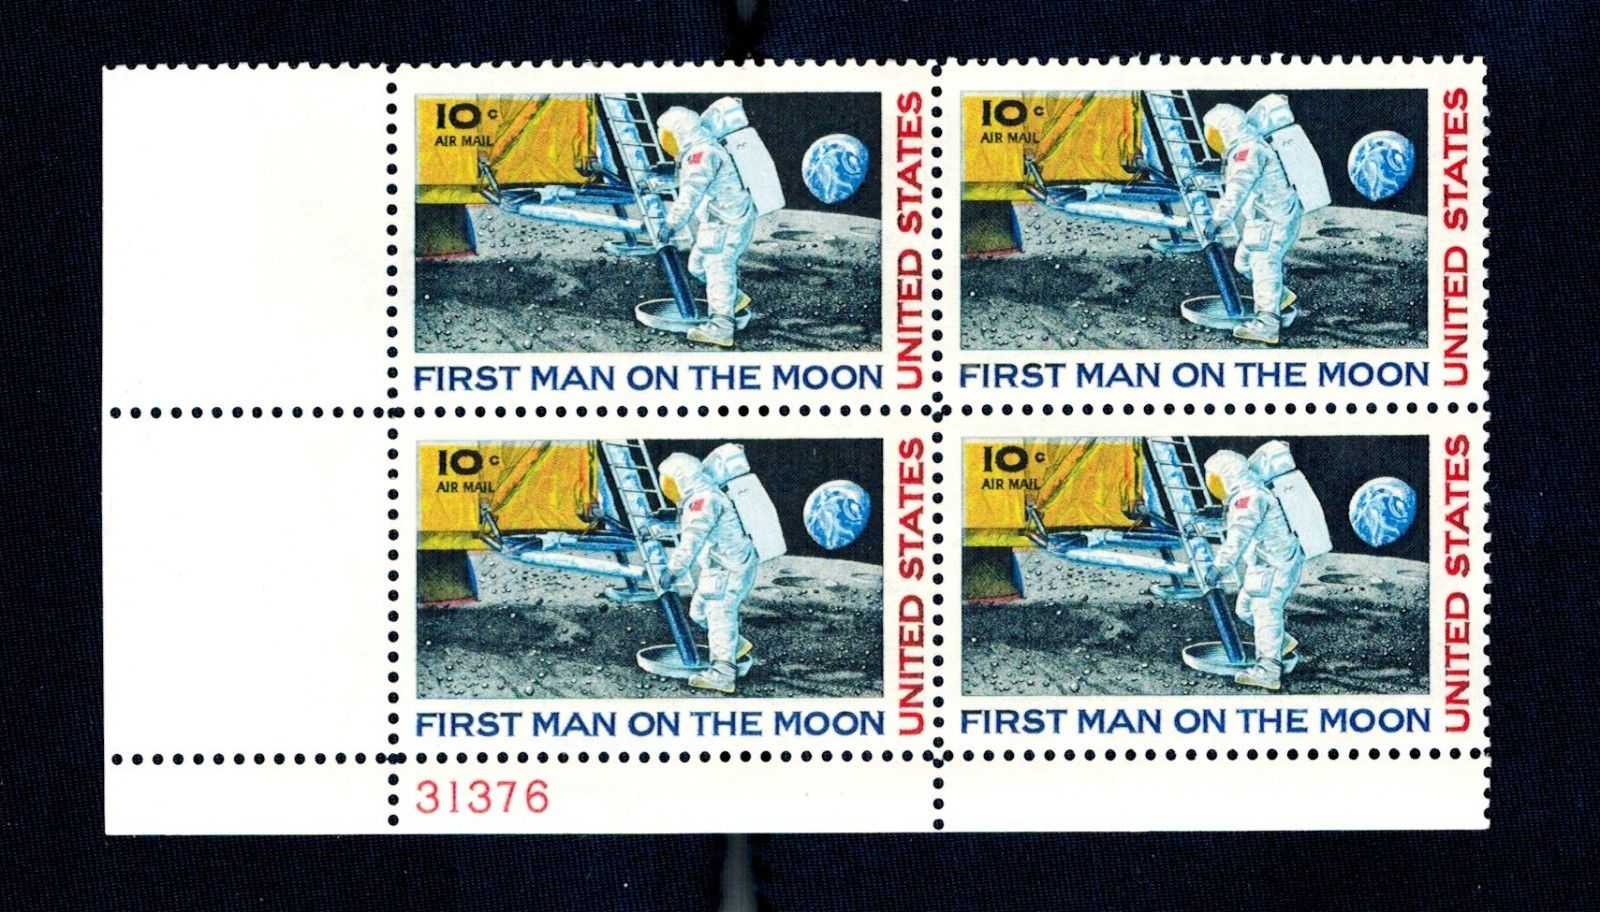 US Air Mail Stamp 1969 - 10 cent First Man on Moon Plate